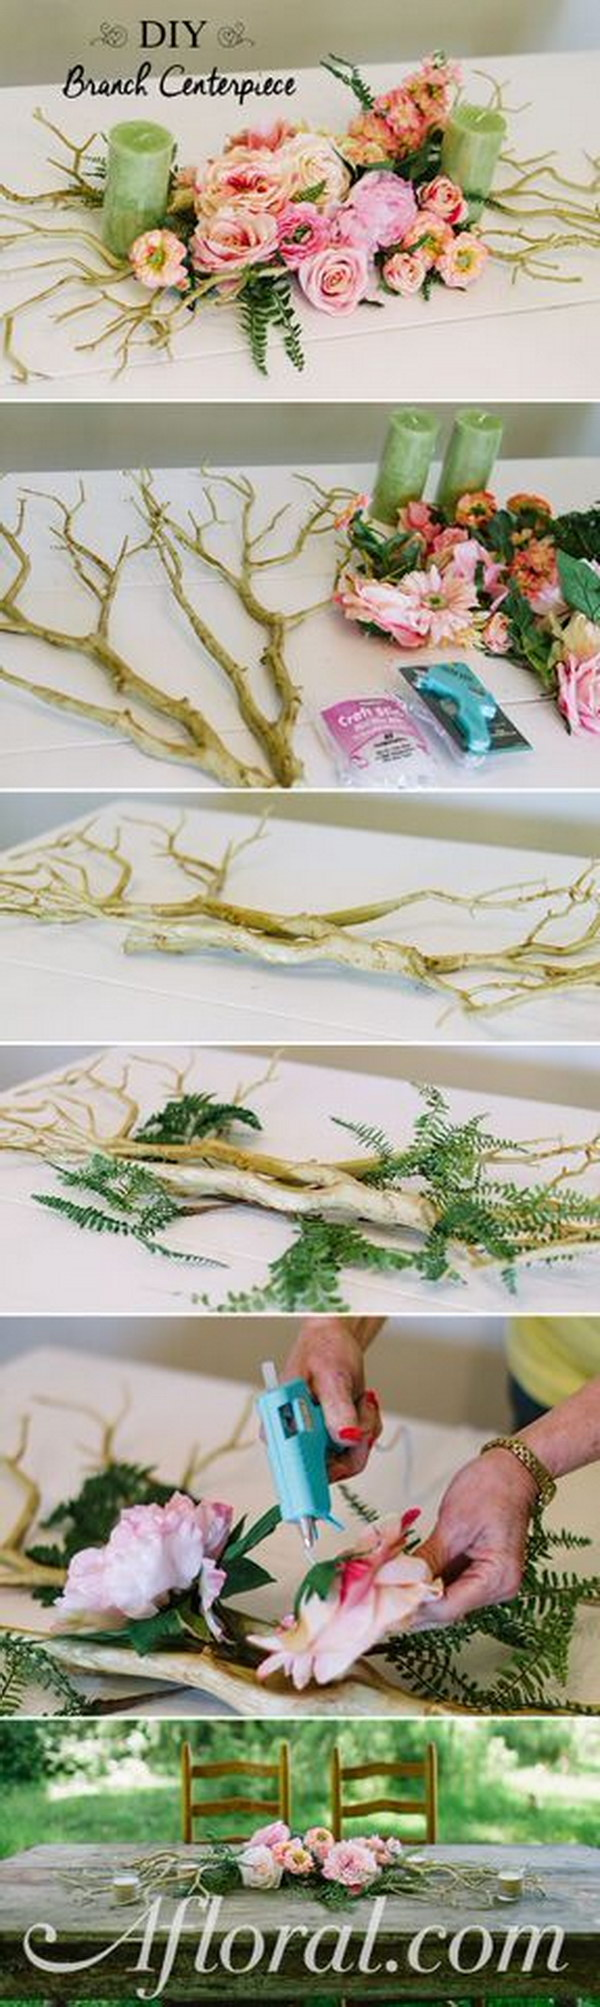 DIY Branch Centerpiece